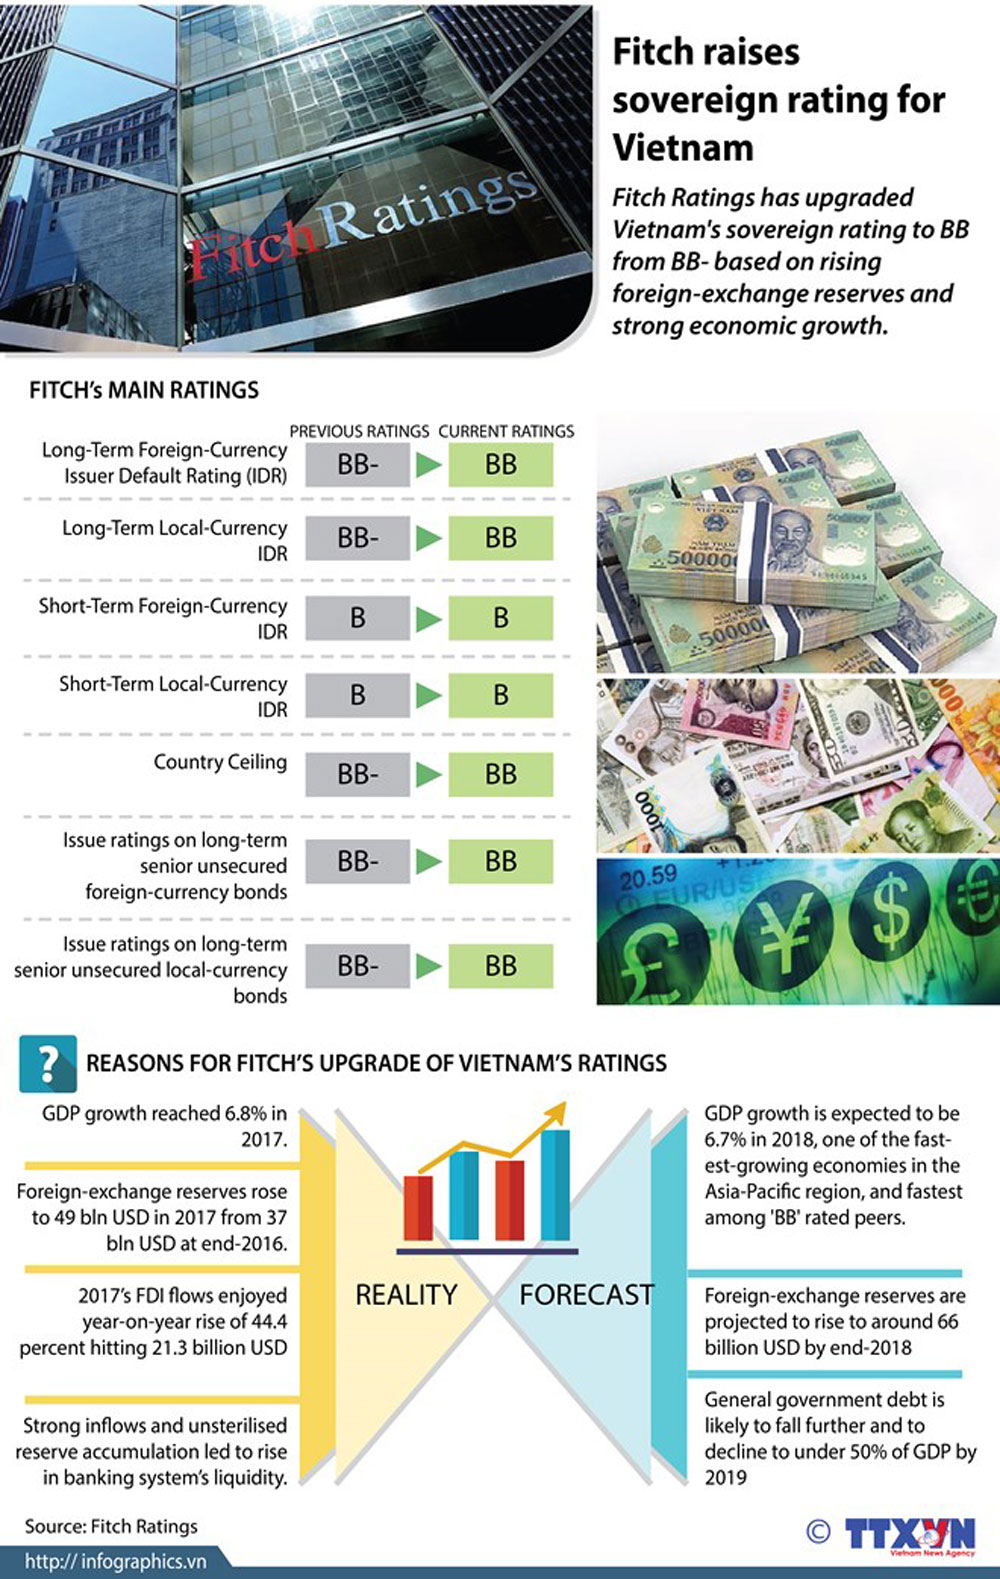 Fitch Ratings, sovereign rating, Vietnam, foreign - exchange reserves, strong economic growth, rising rate